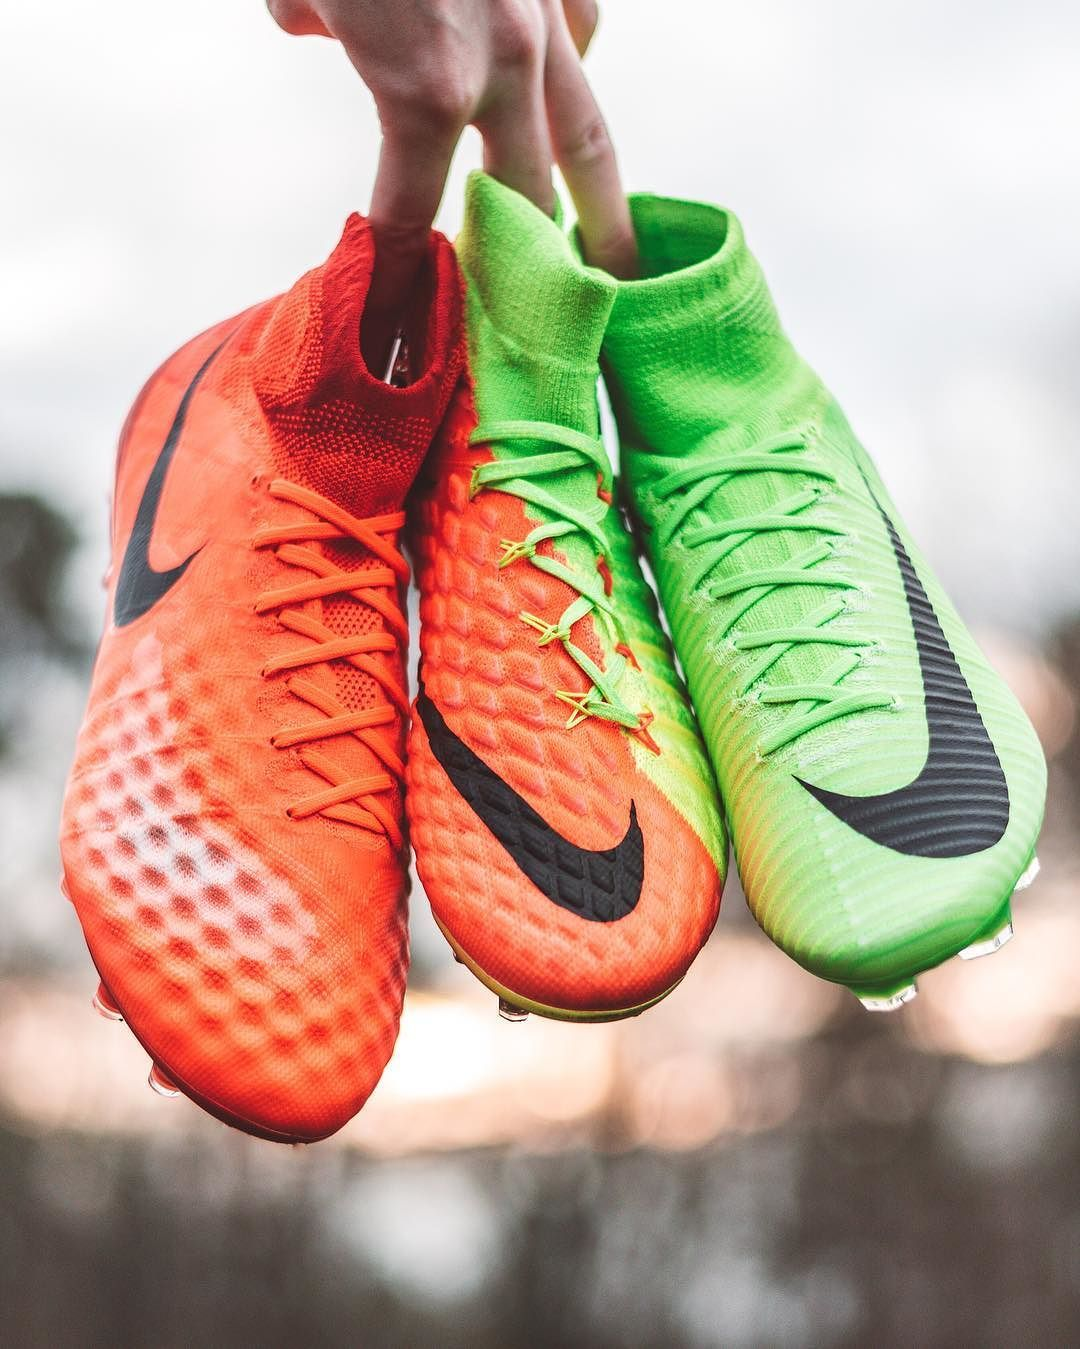 782c47c93253 The new Hypervenom 3 officially joins the @nikefootball family, adopting the  colors of the new Magista and Mercurial Superfly. Introducing the ...